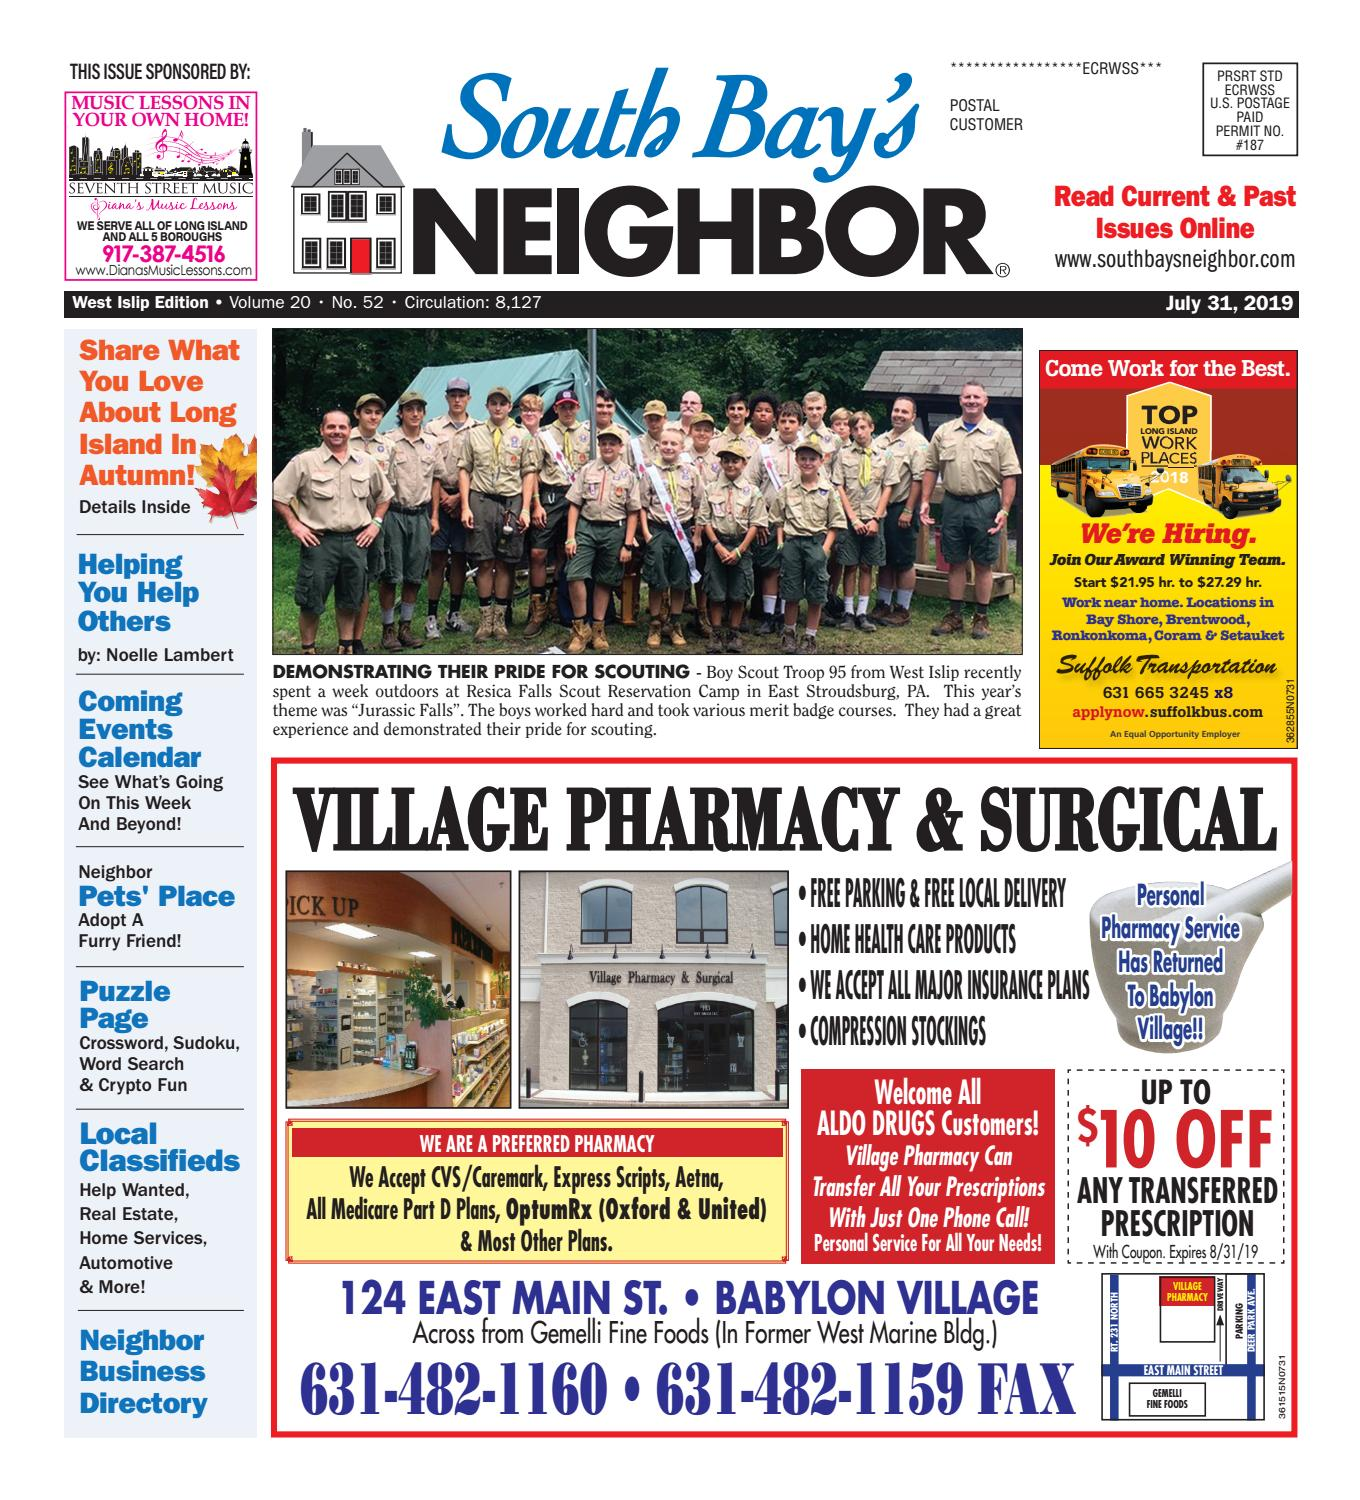 July 31, 2019 West Islip by South Bay's Neighbor Newspapers